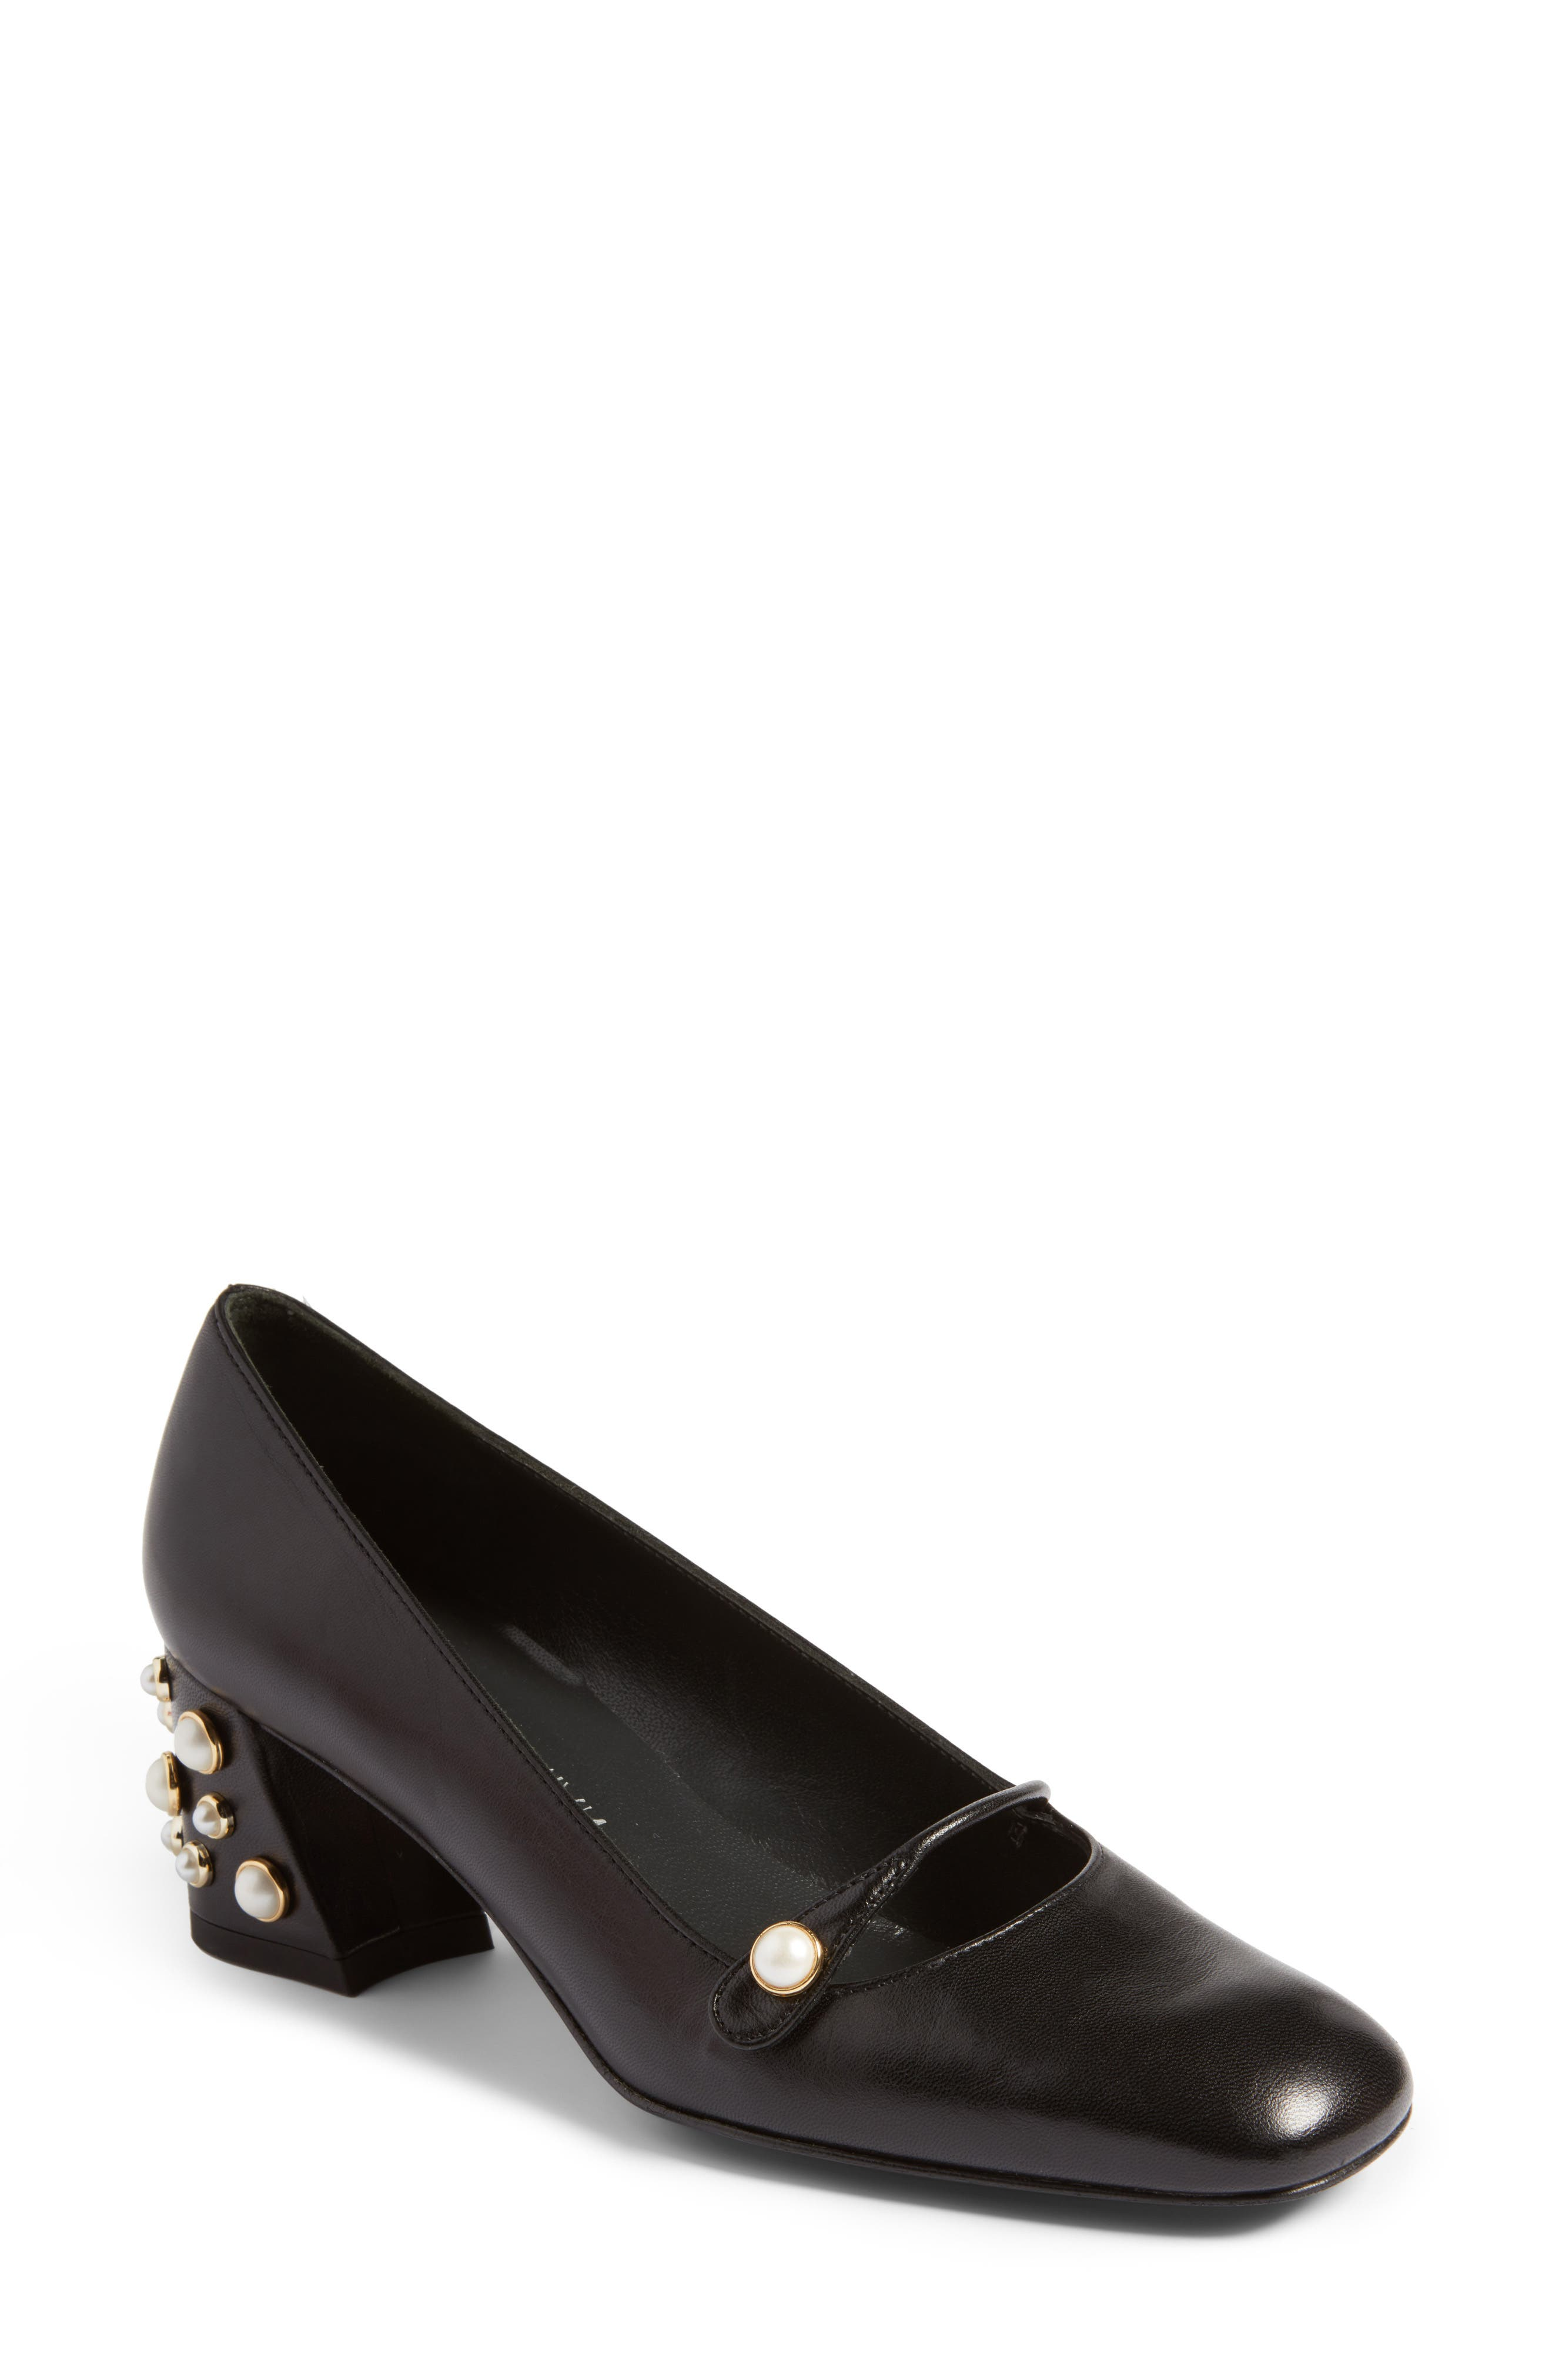 Pearlstrap Pump,                             Main thumbnail 1, color,                             002